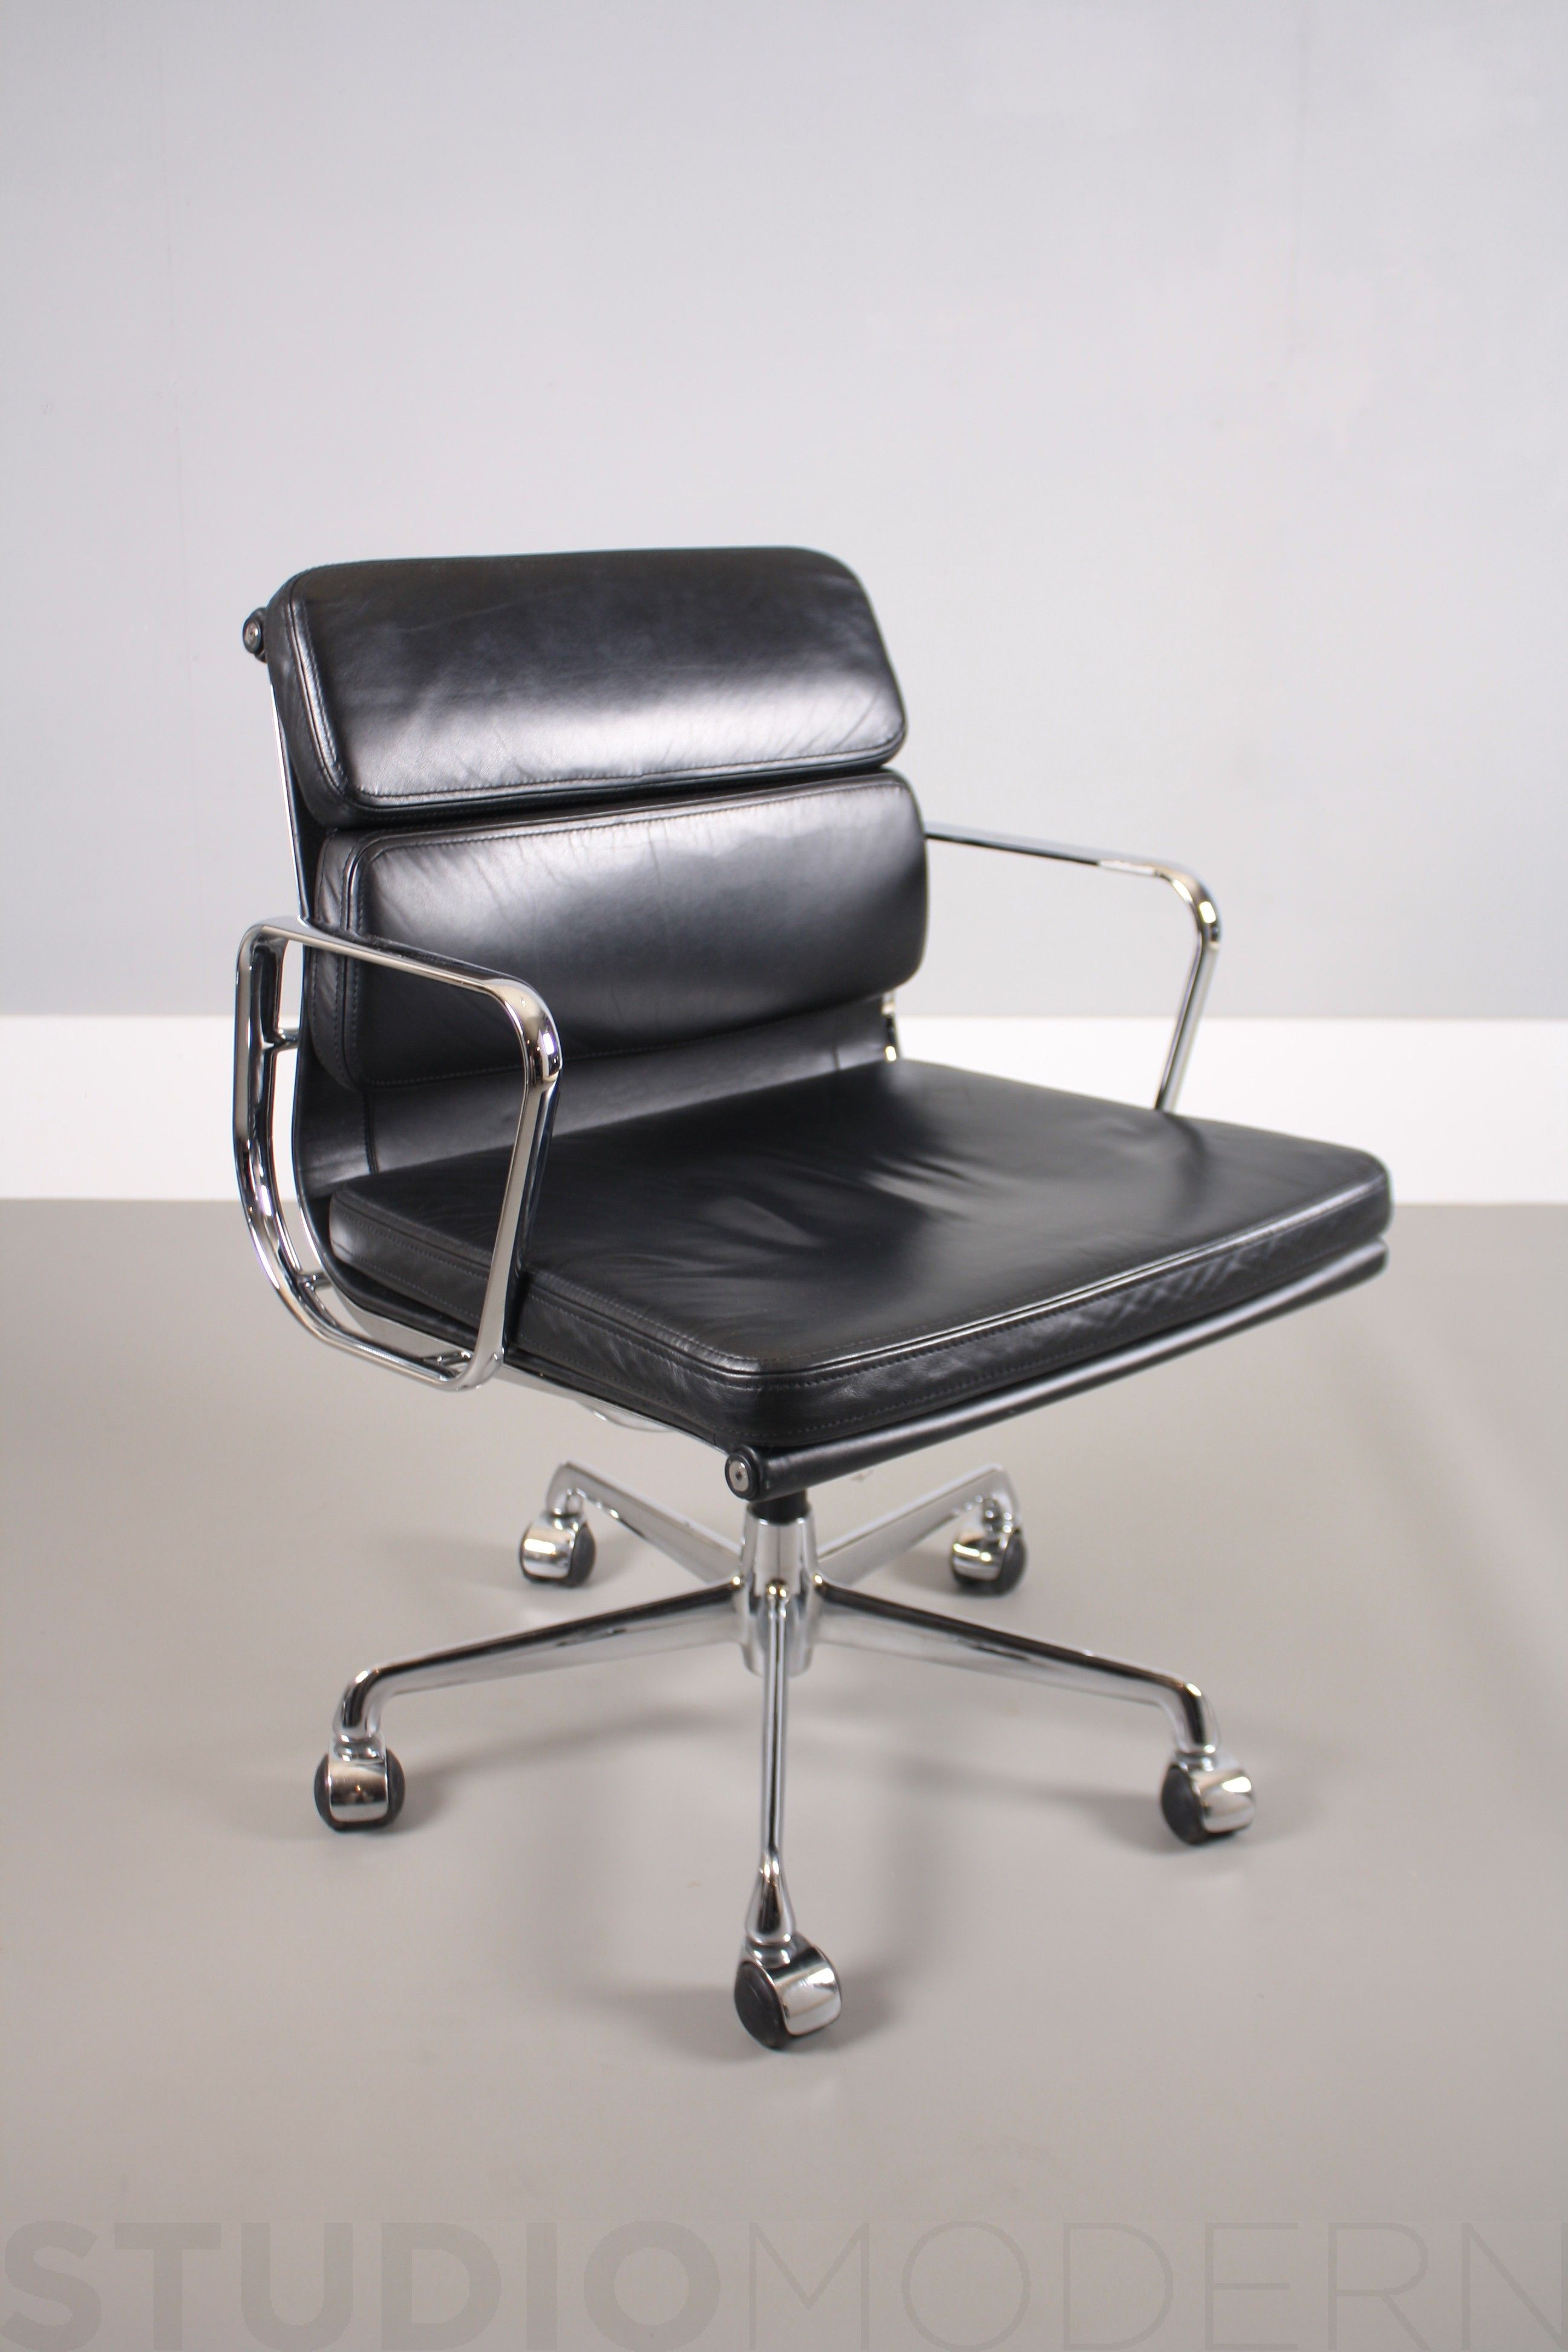 ICF Charles U0026 Ray Eames EA208 Soft Pad Chair. The Frame Of Chair Is Chromed